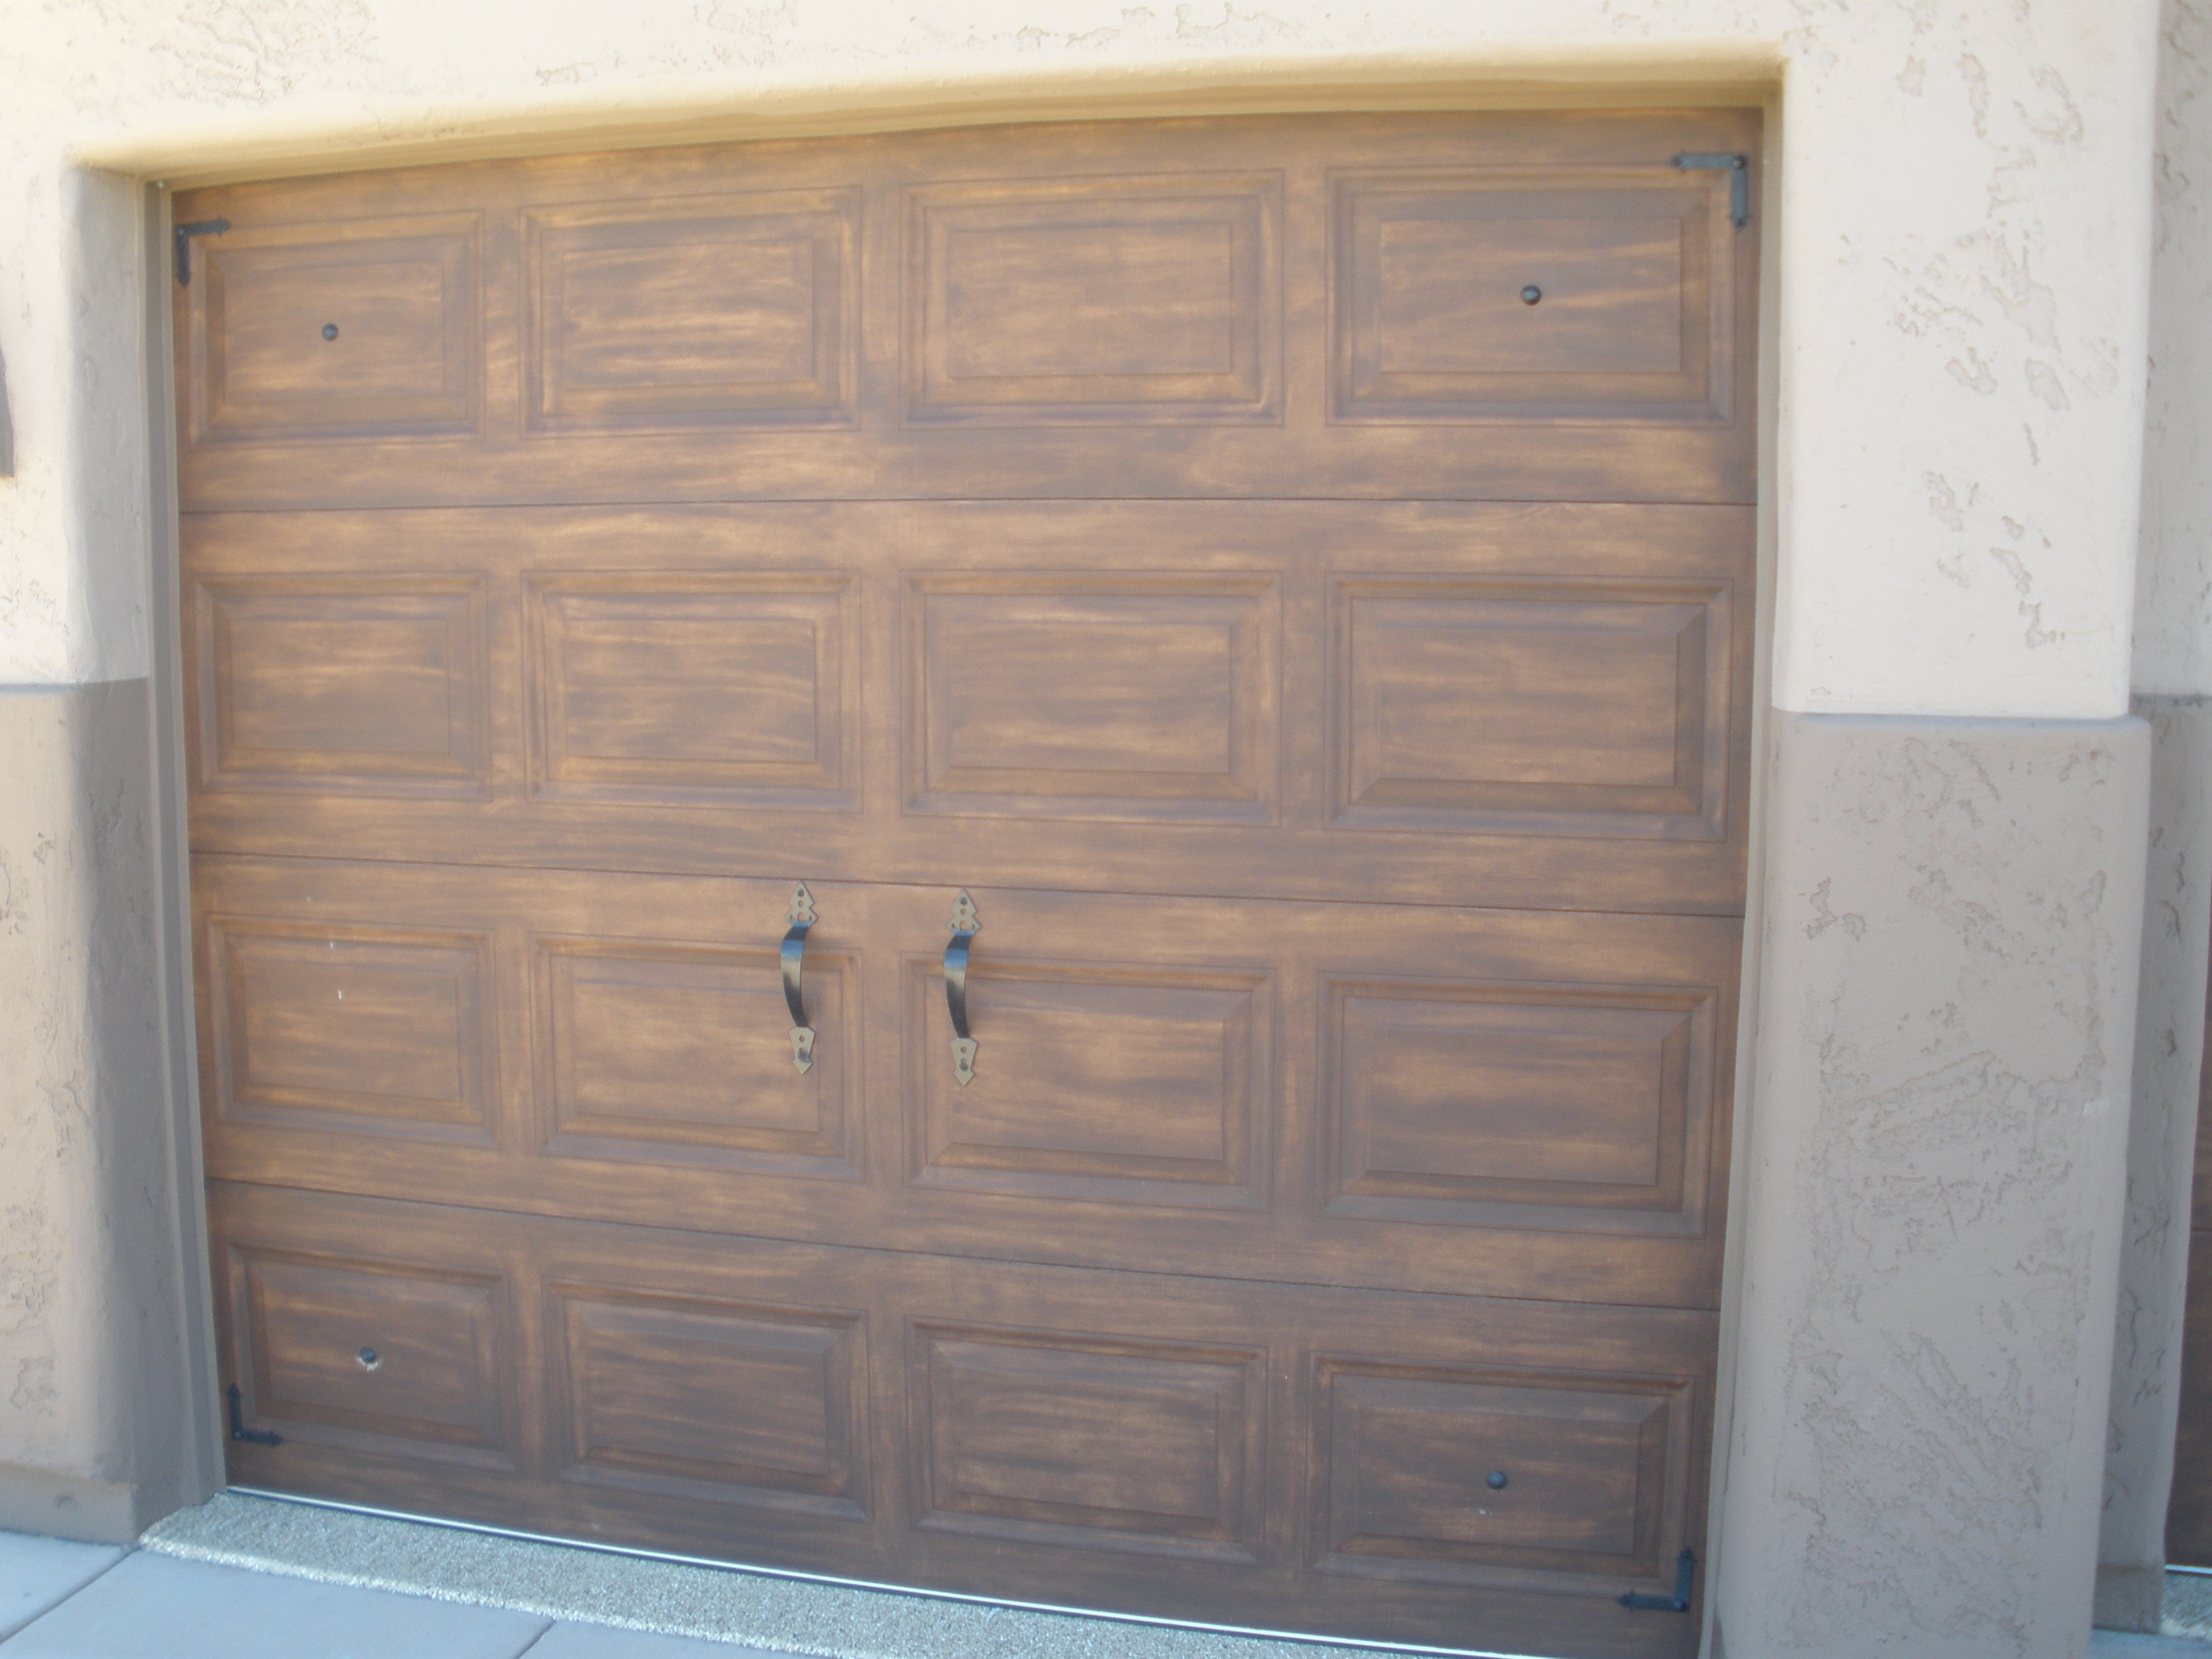 Painted garage doors faux wood to match the door for How to paint faux wood garage doors